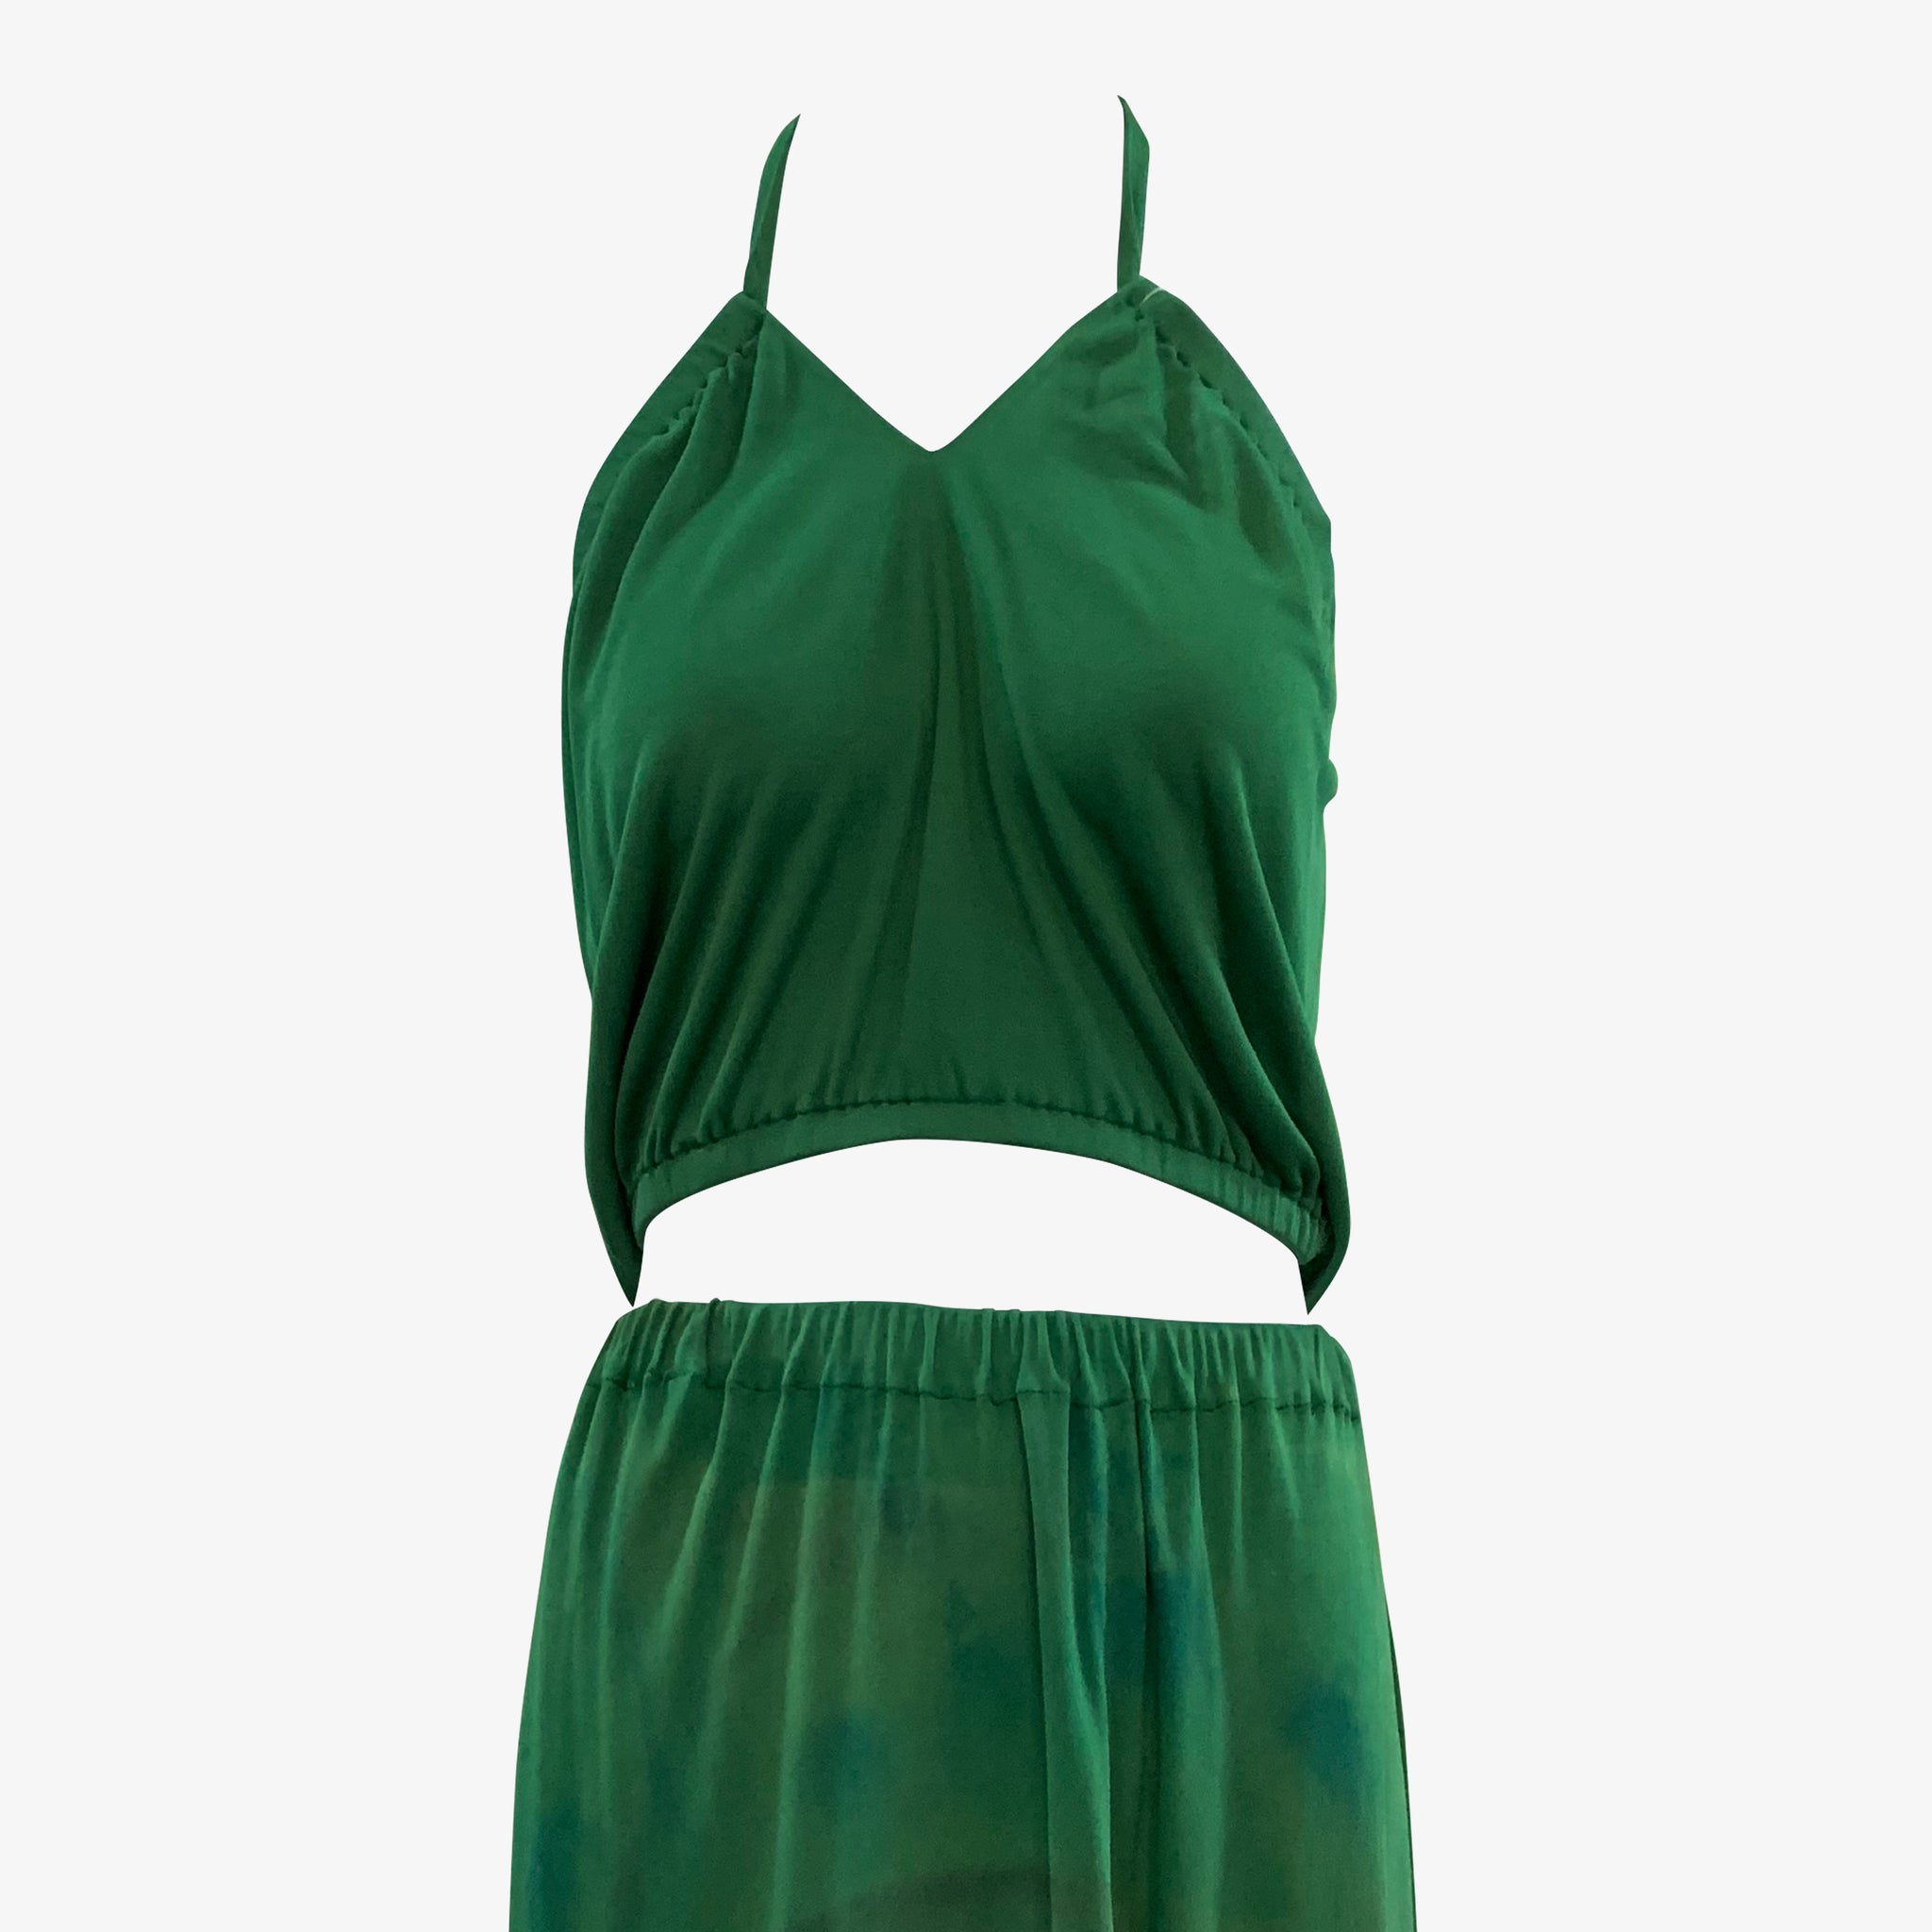 Holly's Harp 70s 3 Piece Green Jersey Hand Painted Ensemble